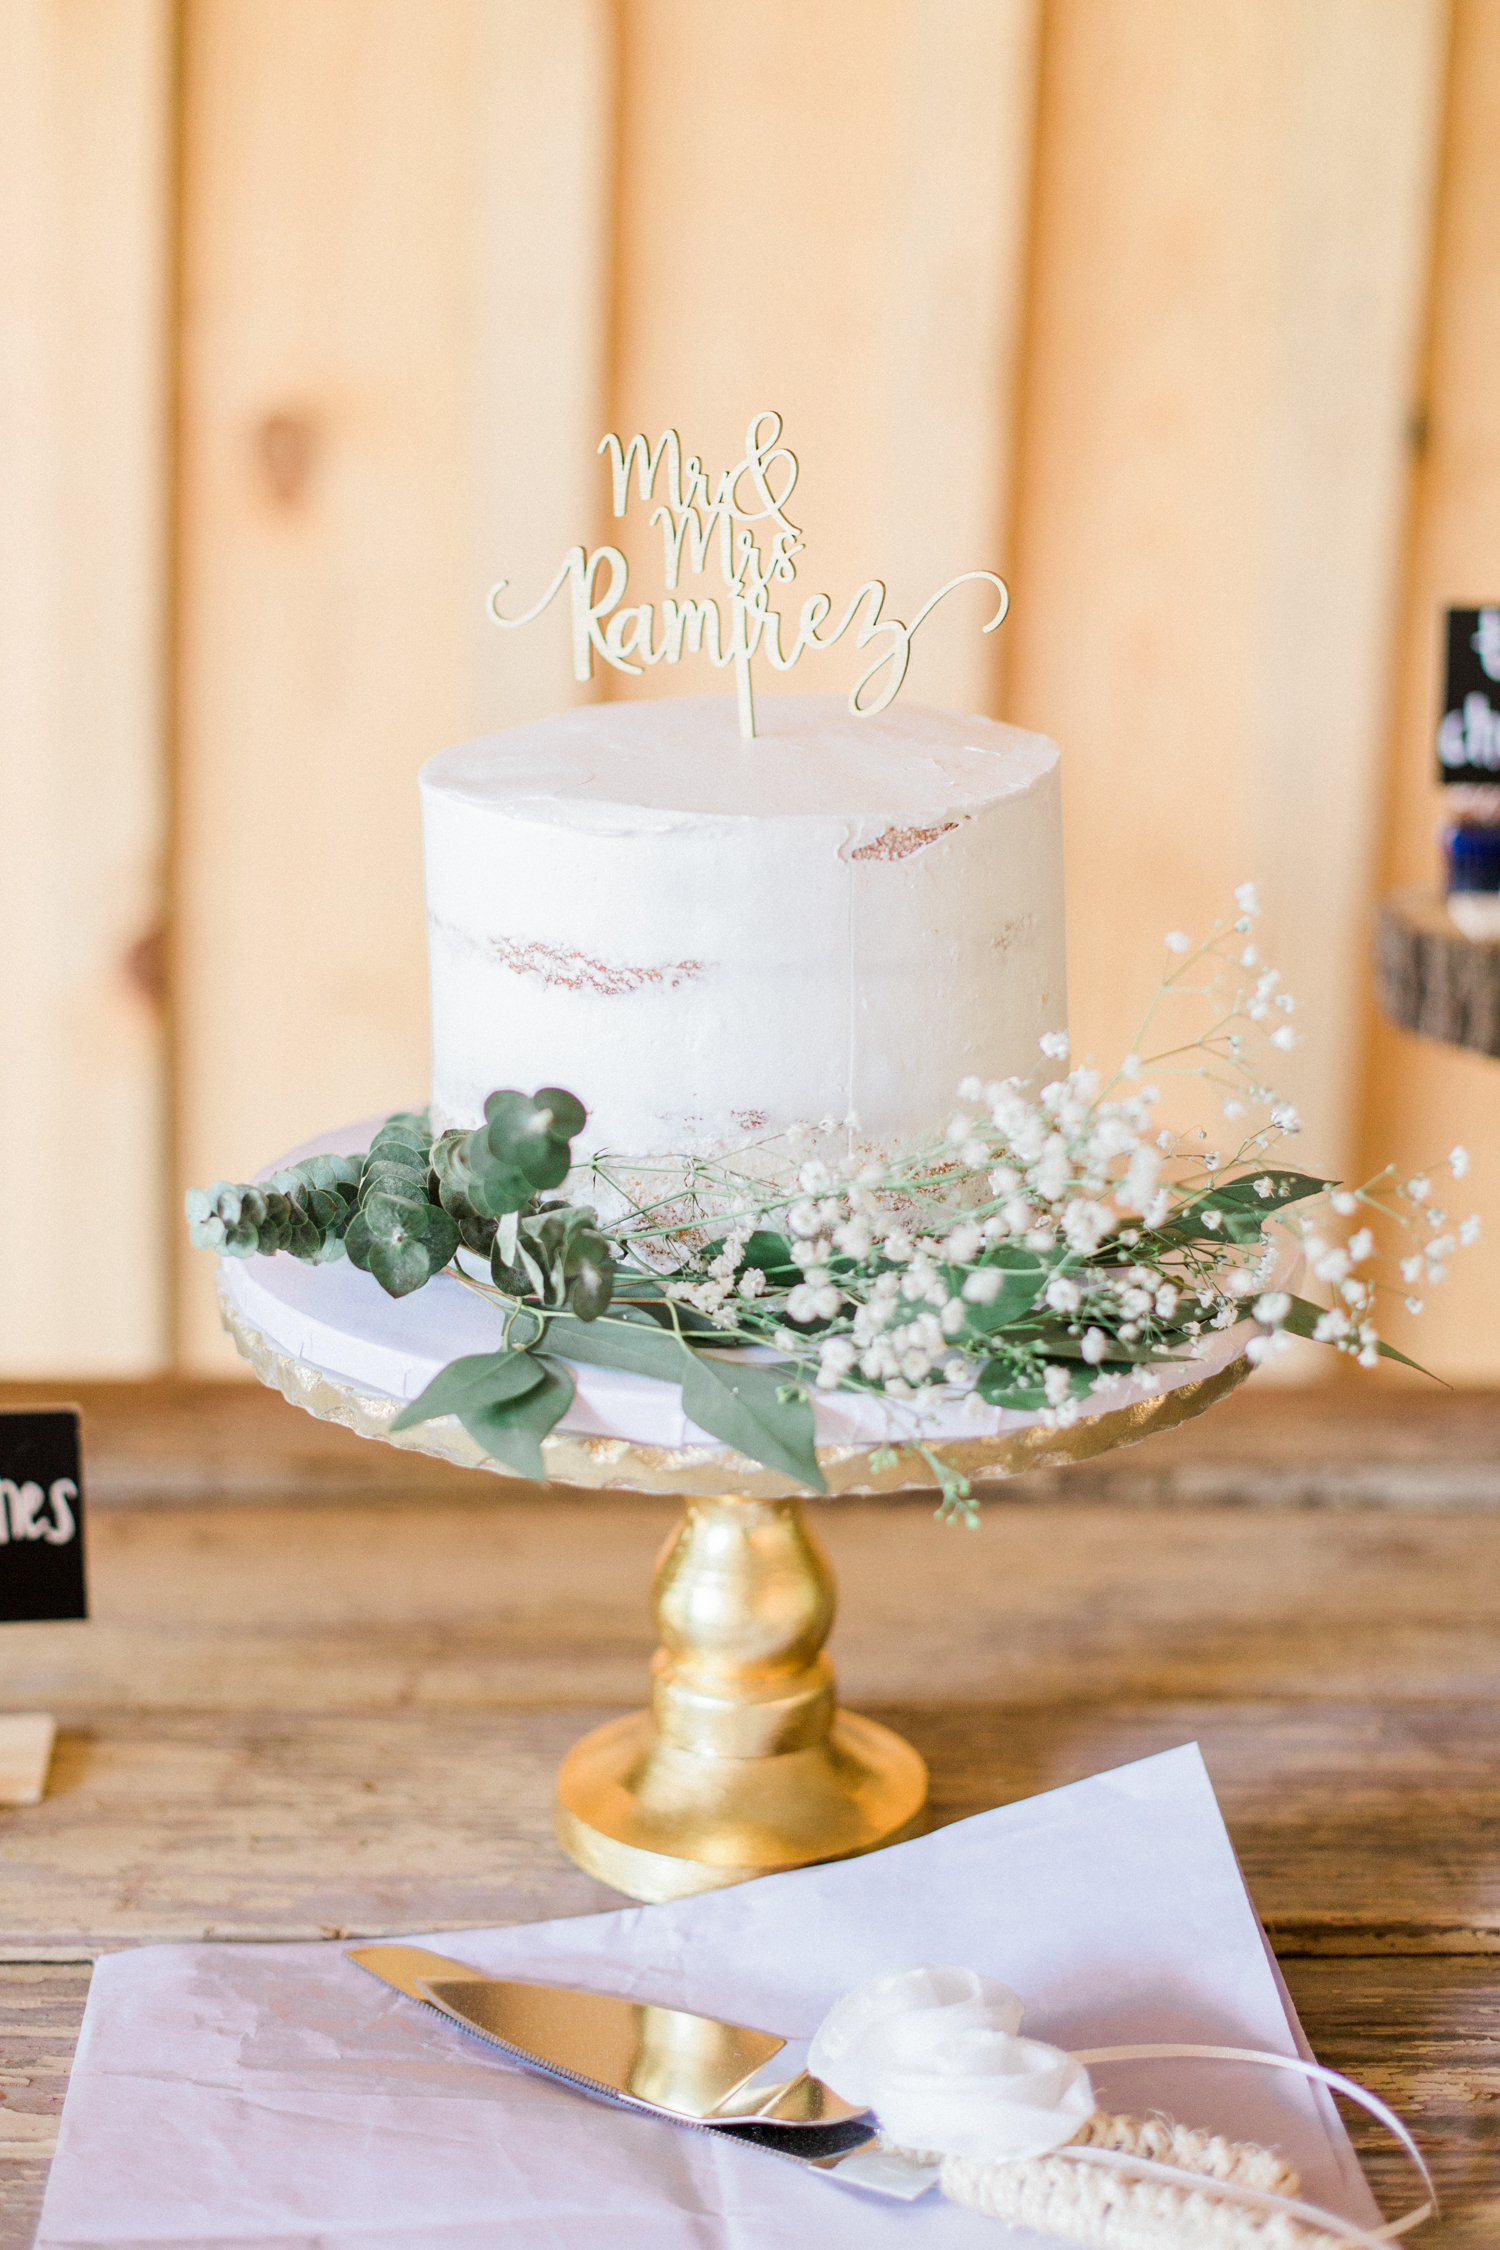 Mr and Mrs cake topper on a wedding cake decoded with baby's breath and eucalyptus. Summer, outdoor, barn wedding in north Georgia at Hays McDonald Farm in Jefferson, Georgia. Photo by Kesia Marie Photography - Fine Art Wedding Photographer.